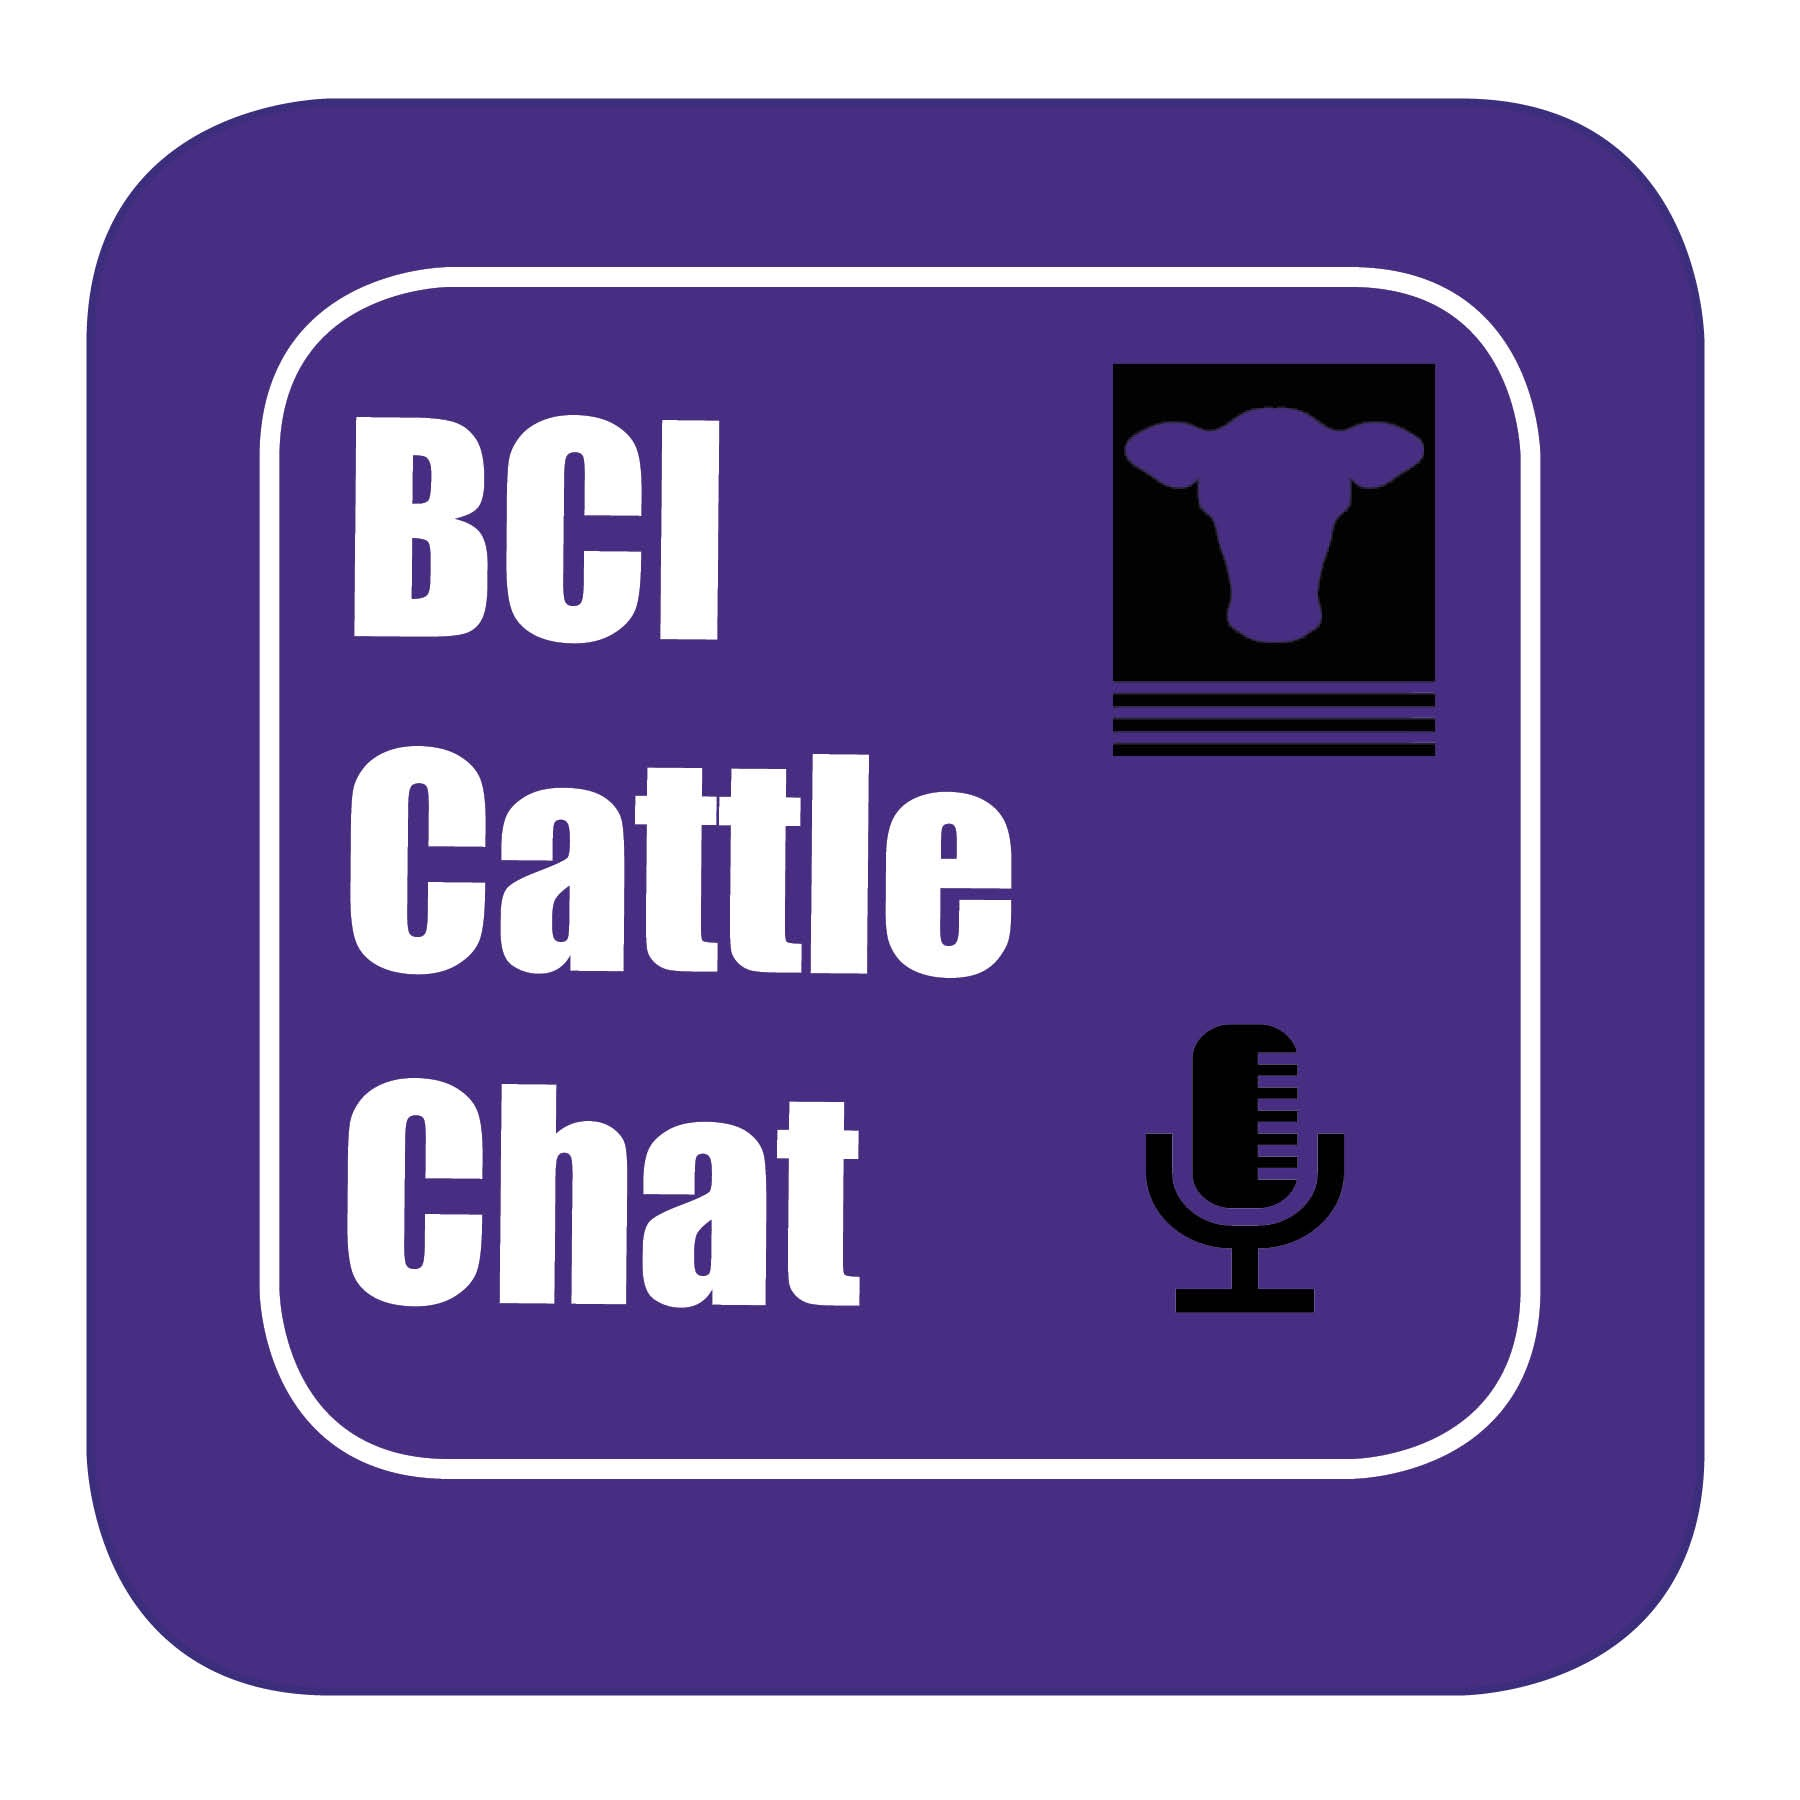 BCI Cattle Chat - Episode 10